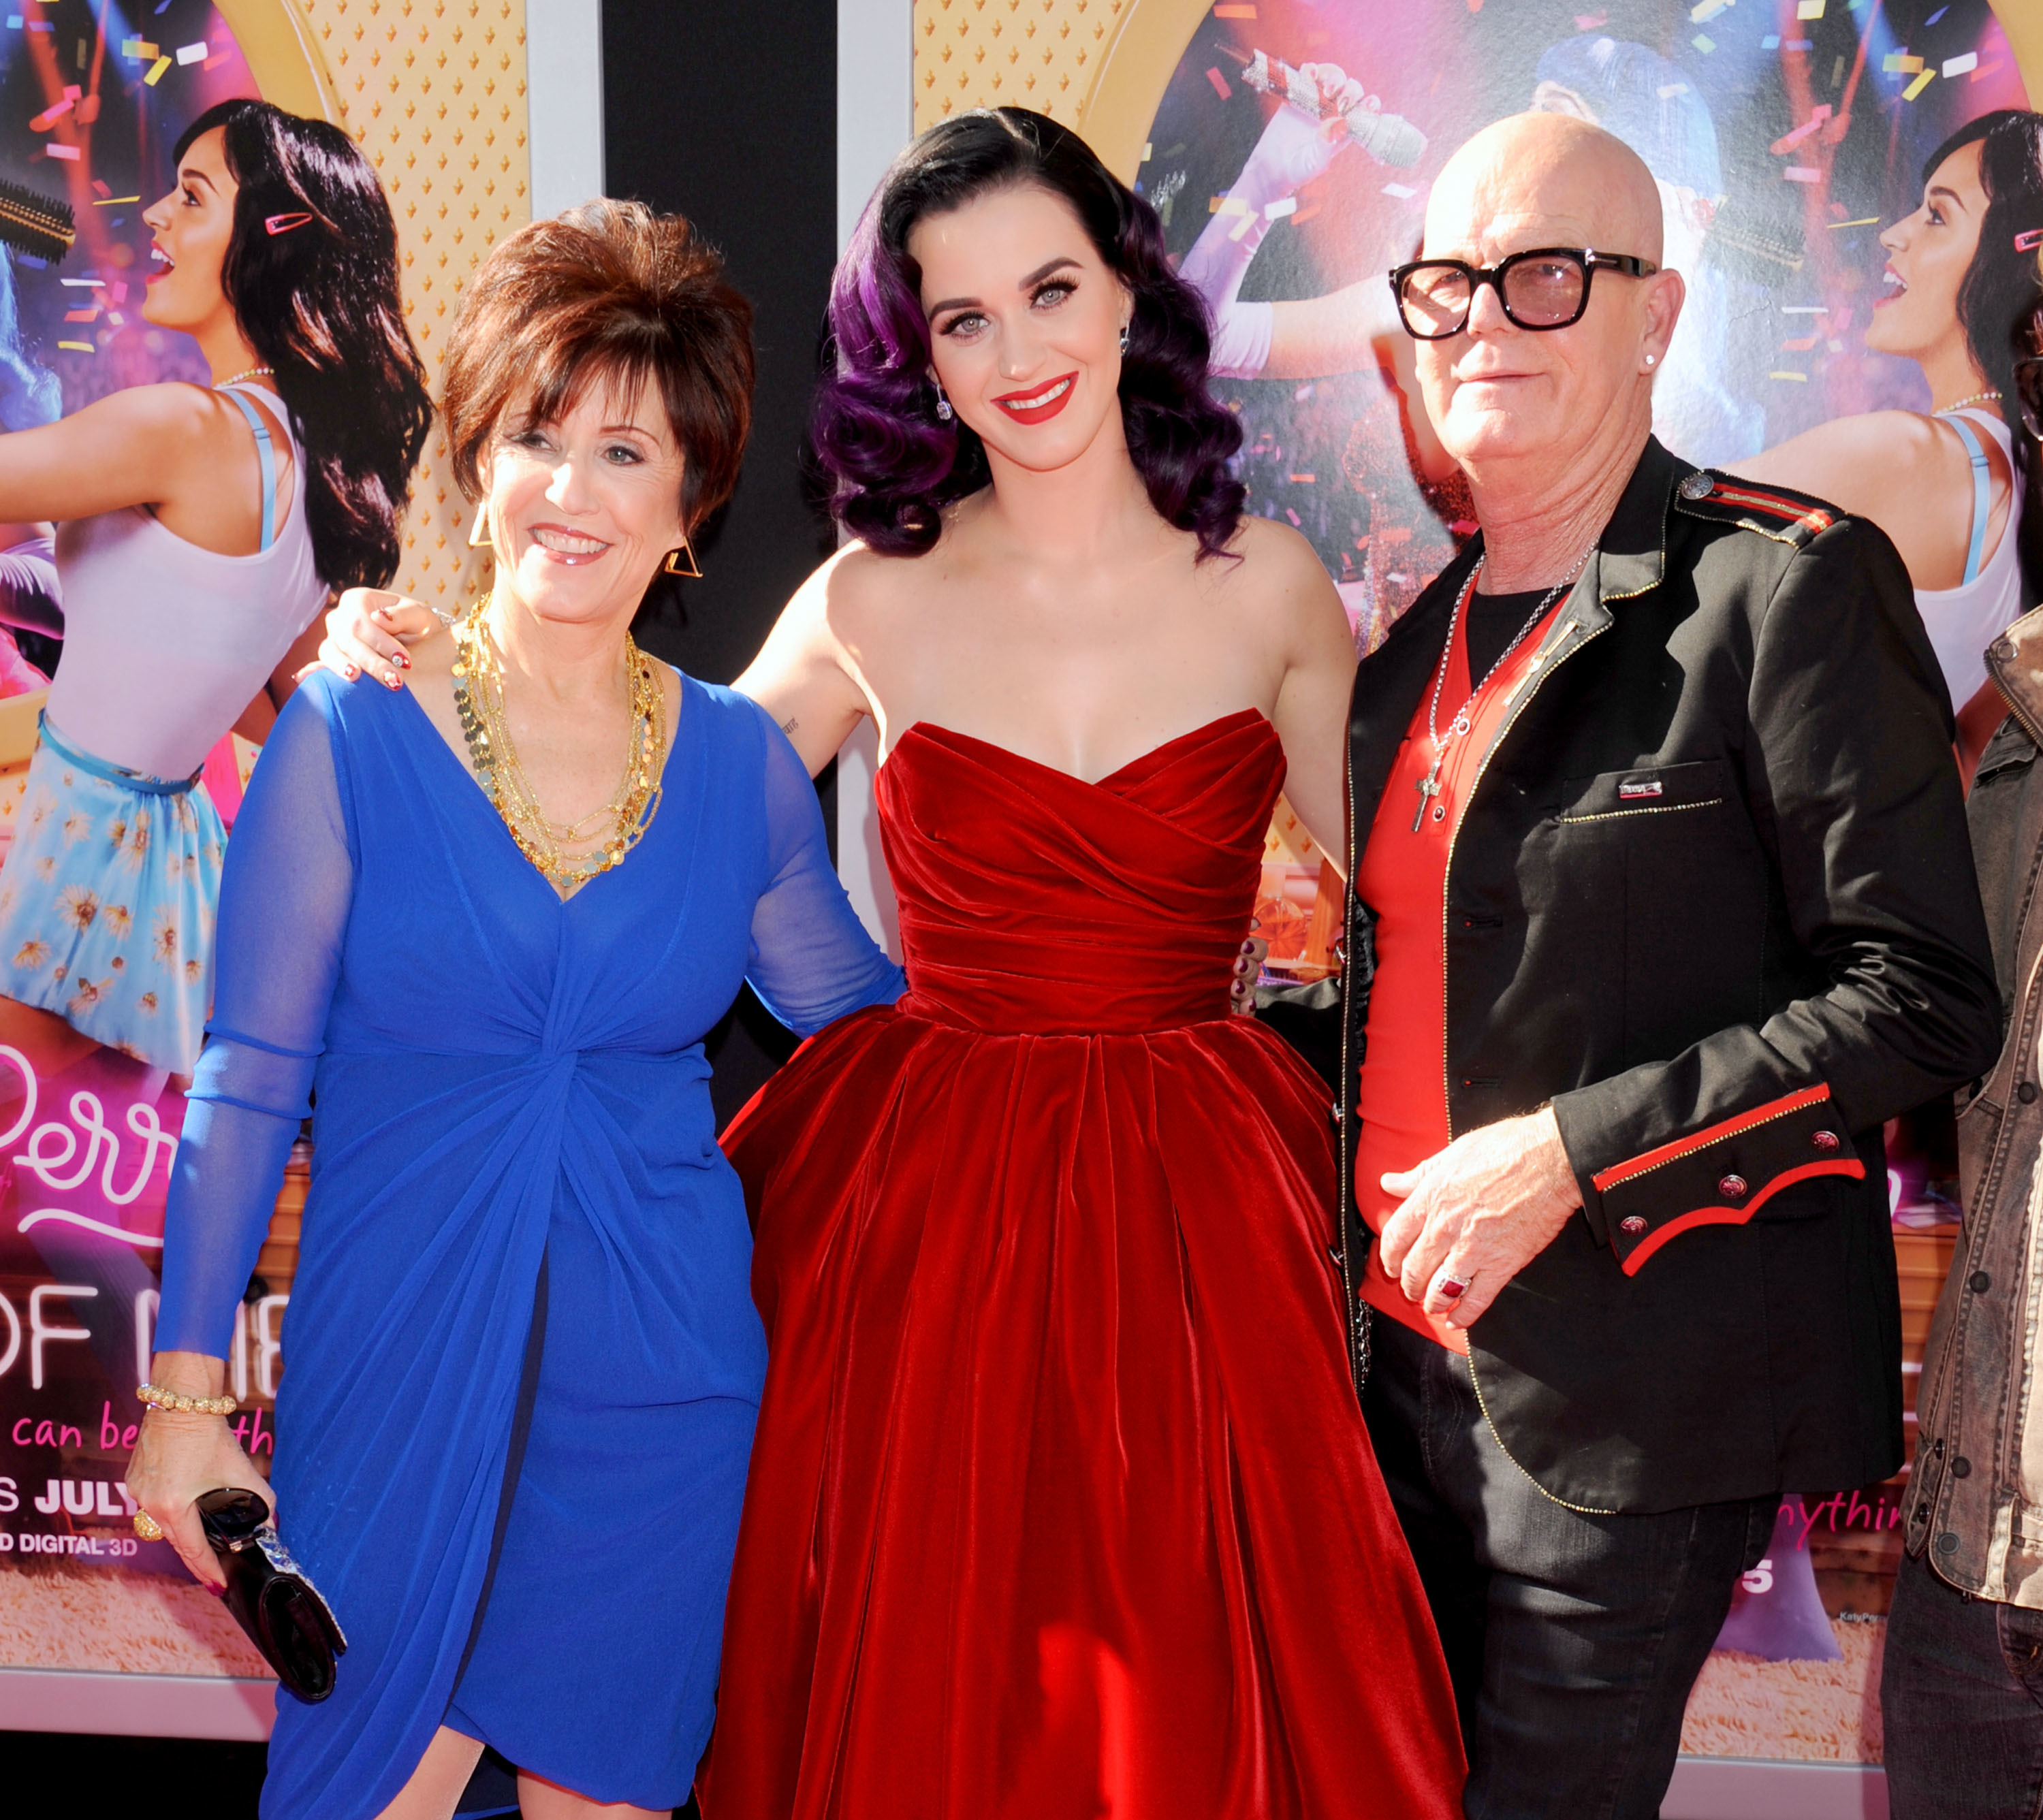 """Katy Perry poses with mom Mary Perry Hudson and dad Keith Hudson at the """"Katy Perry: Part Of Me"""" premiere at Grauman's Chinese Theatre in Hollywood on June 26, 2012."""